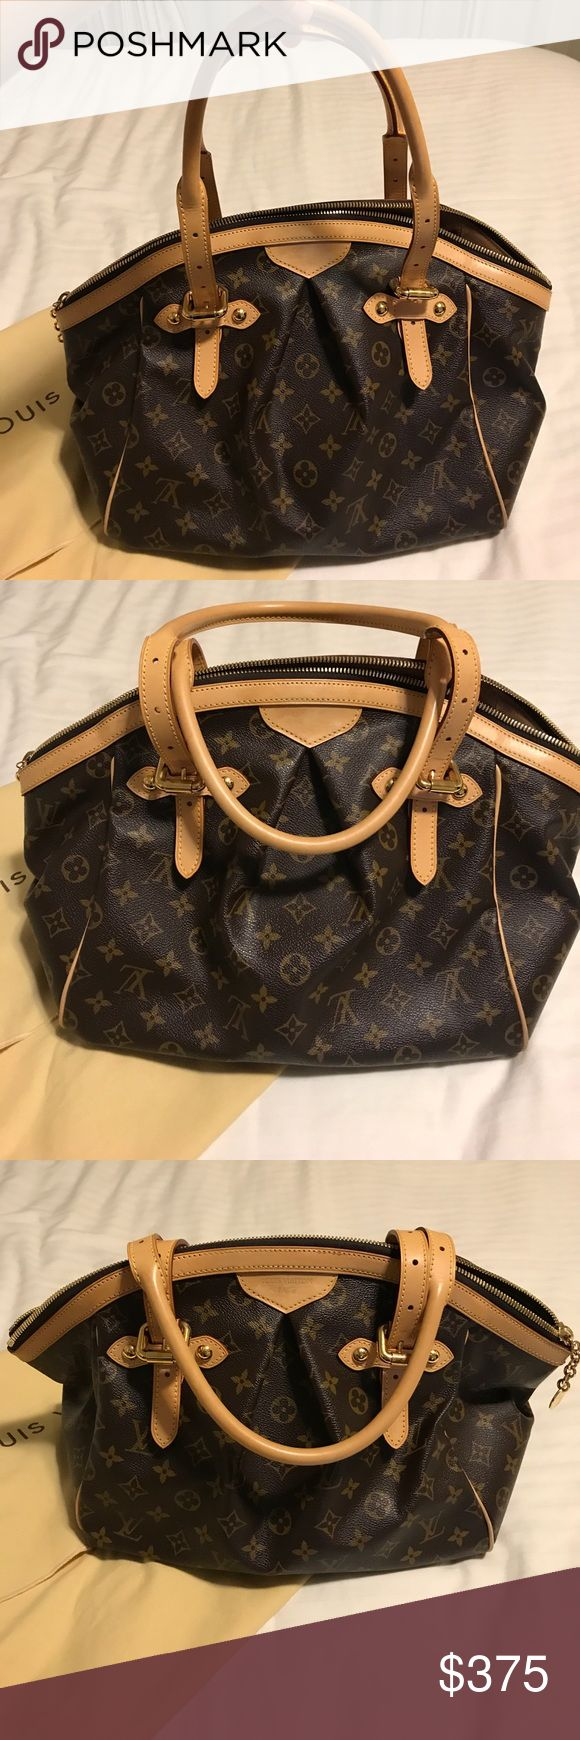 Louis Vuitton Bag Barely worn LV in excellent condition! Purchased for $1300 originally at the south coast mall in Orange County CA. Message me for any details Louis Vuitton Bags Shoulder Bags